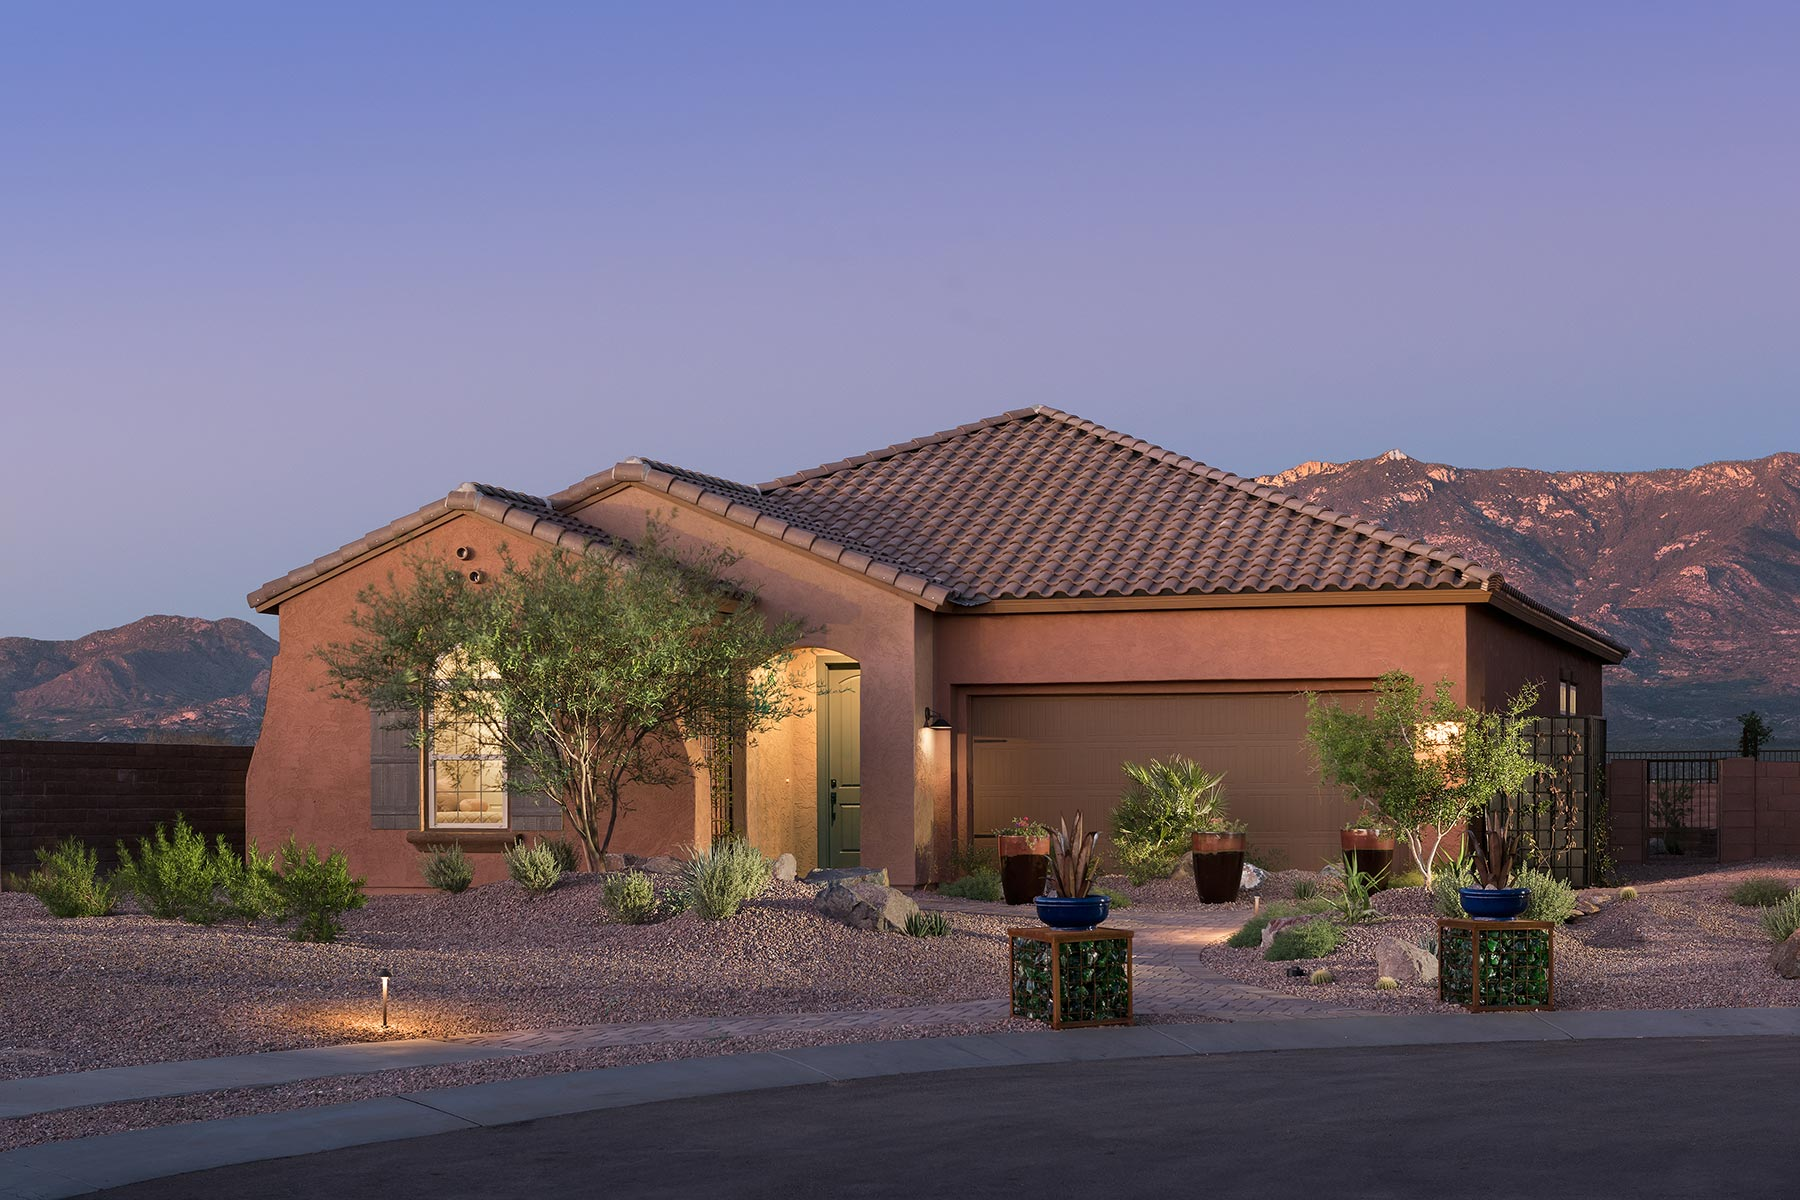 Aspect Plan Exterior Others at Viewpointe at Vistoso Trails in Oro Valley Arizona by Mattamy Homes